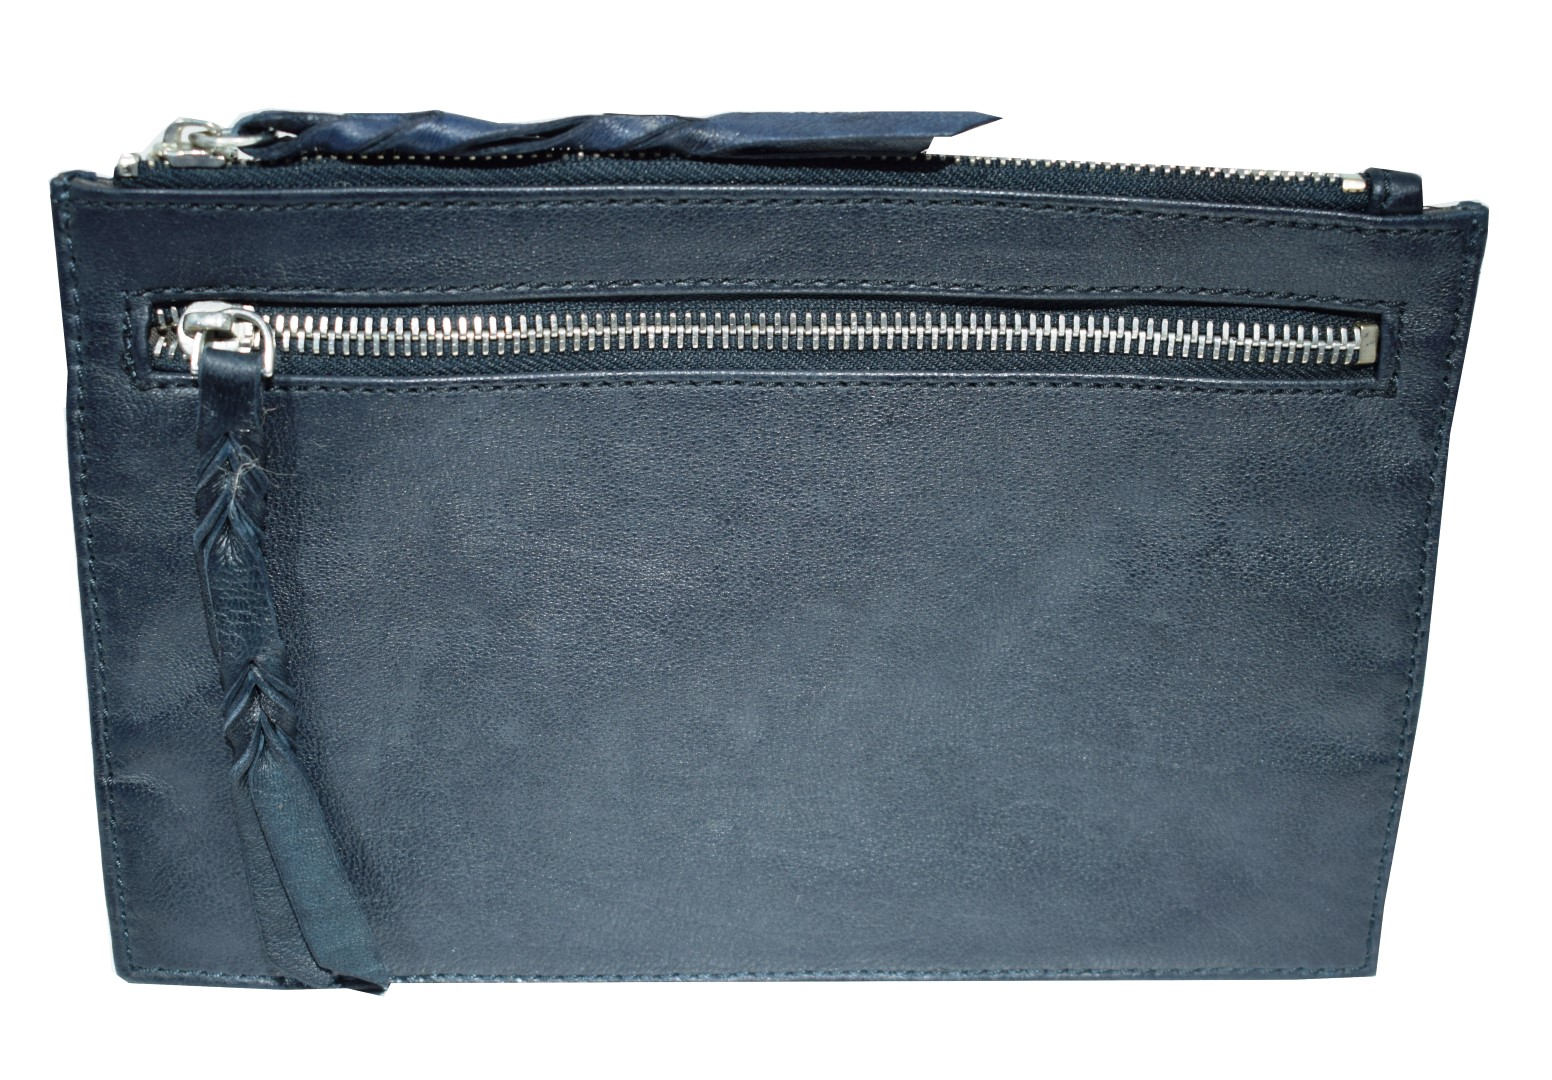 Twin Zip Purse - Rrp £59